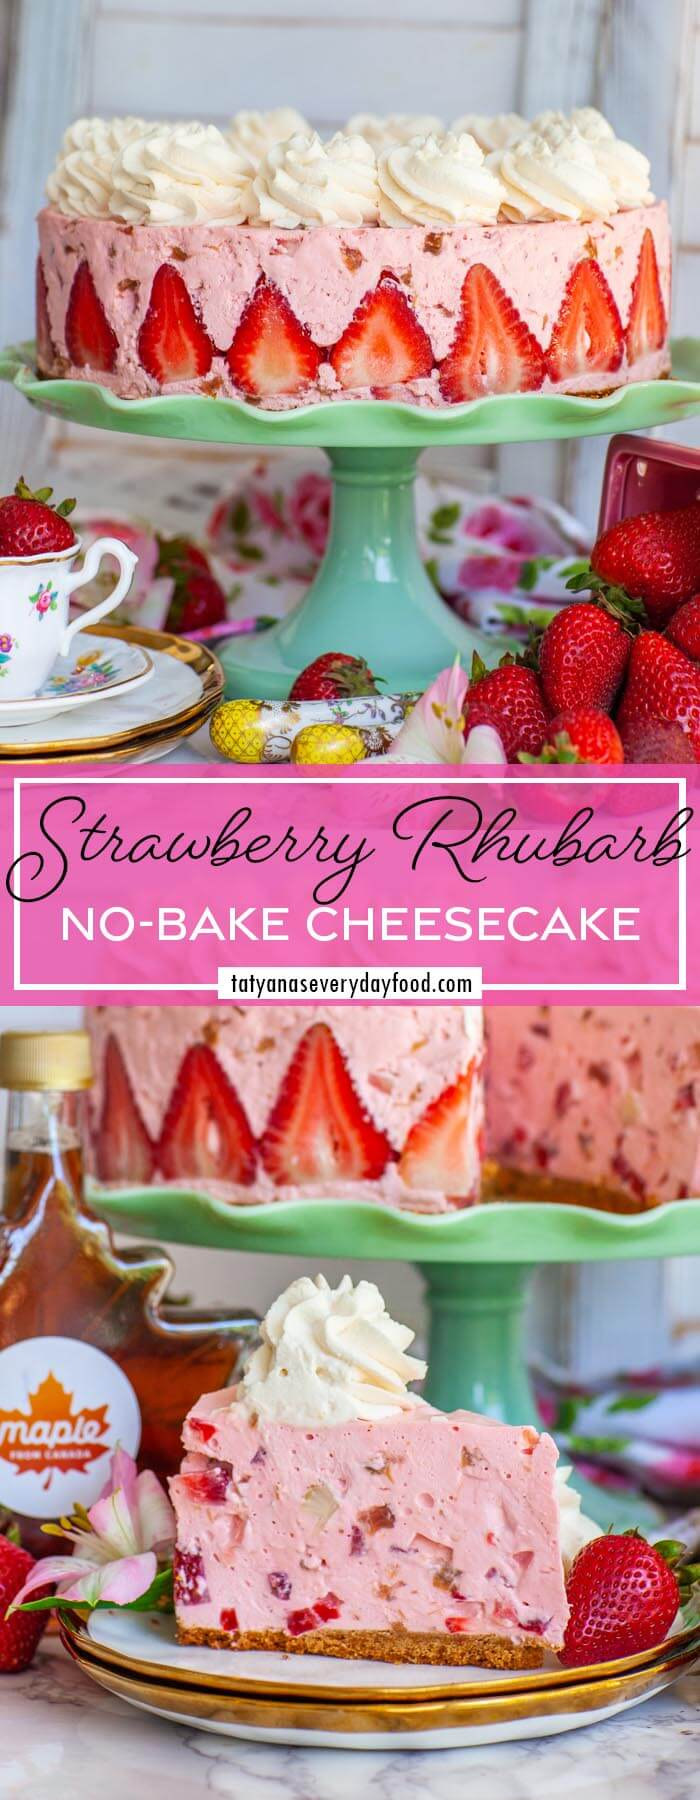 No-Bake Strawberry Cheesecake with Rhubarb & Maple Syrup video recipe